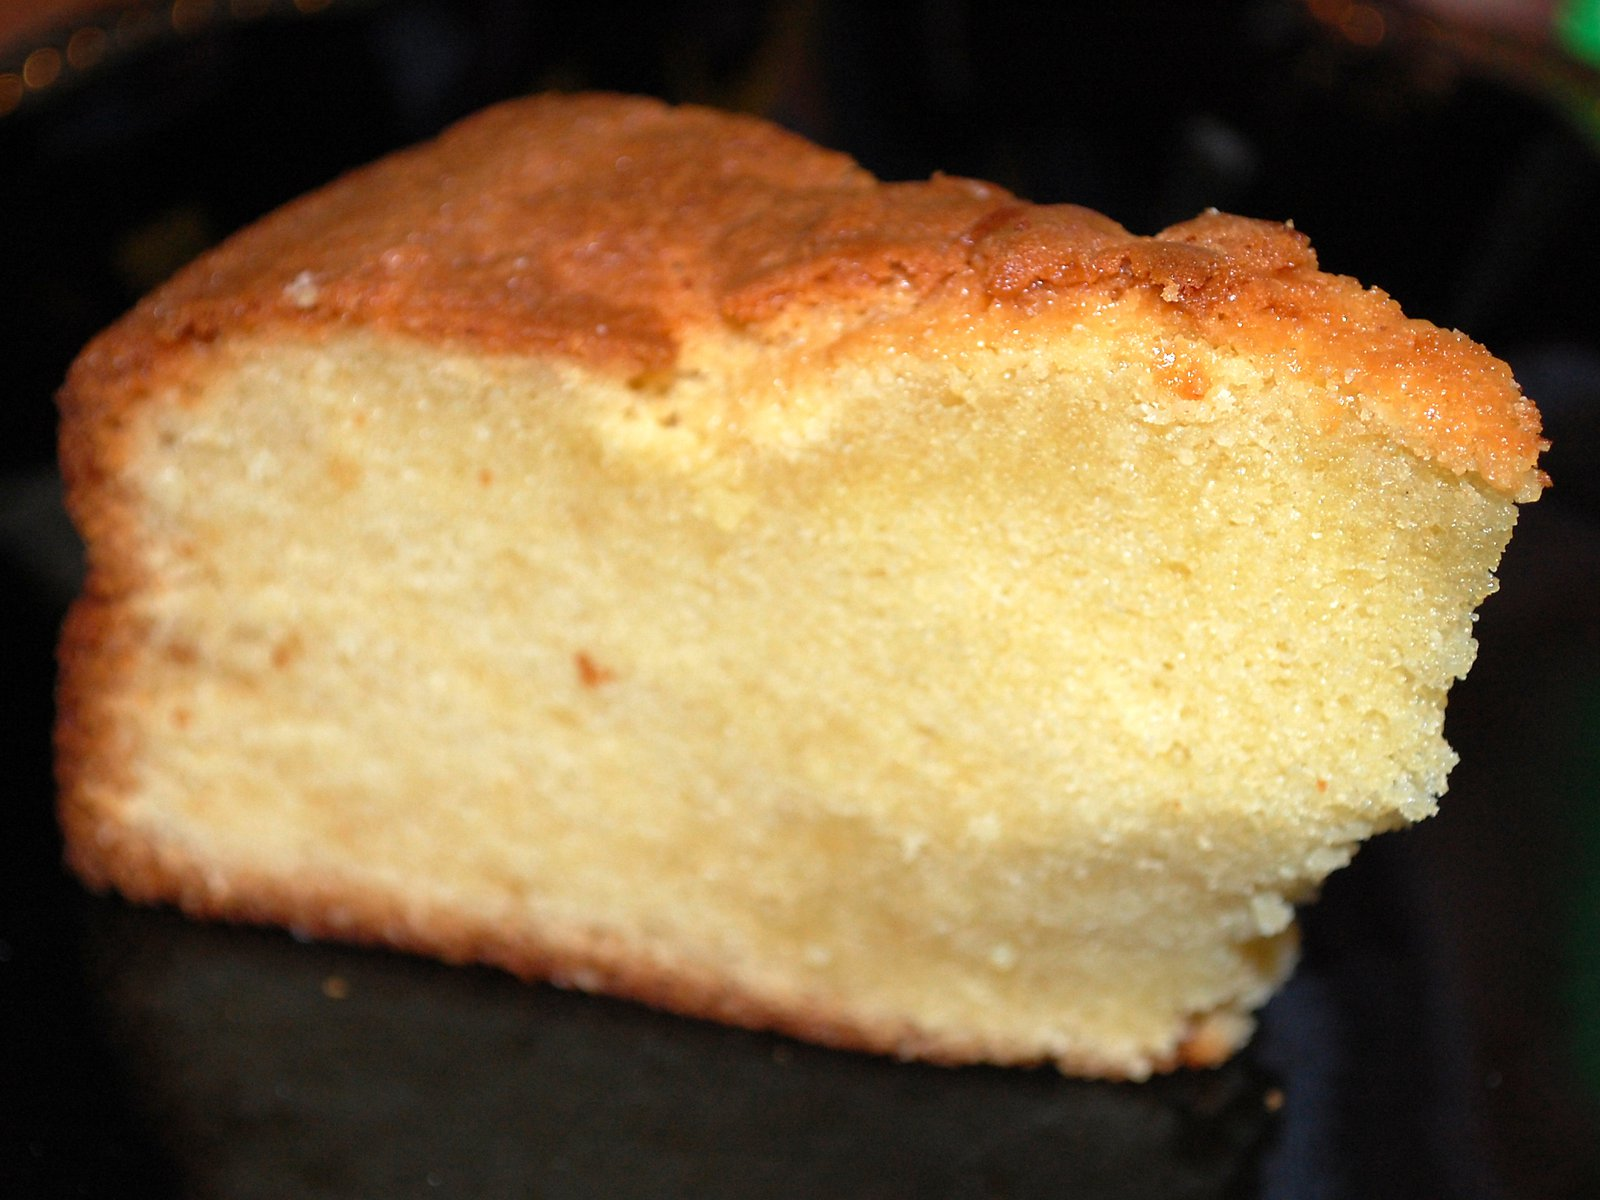 A Slice Of Home Made Almond Cake